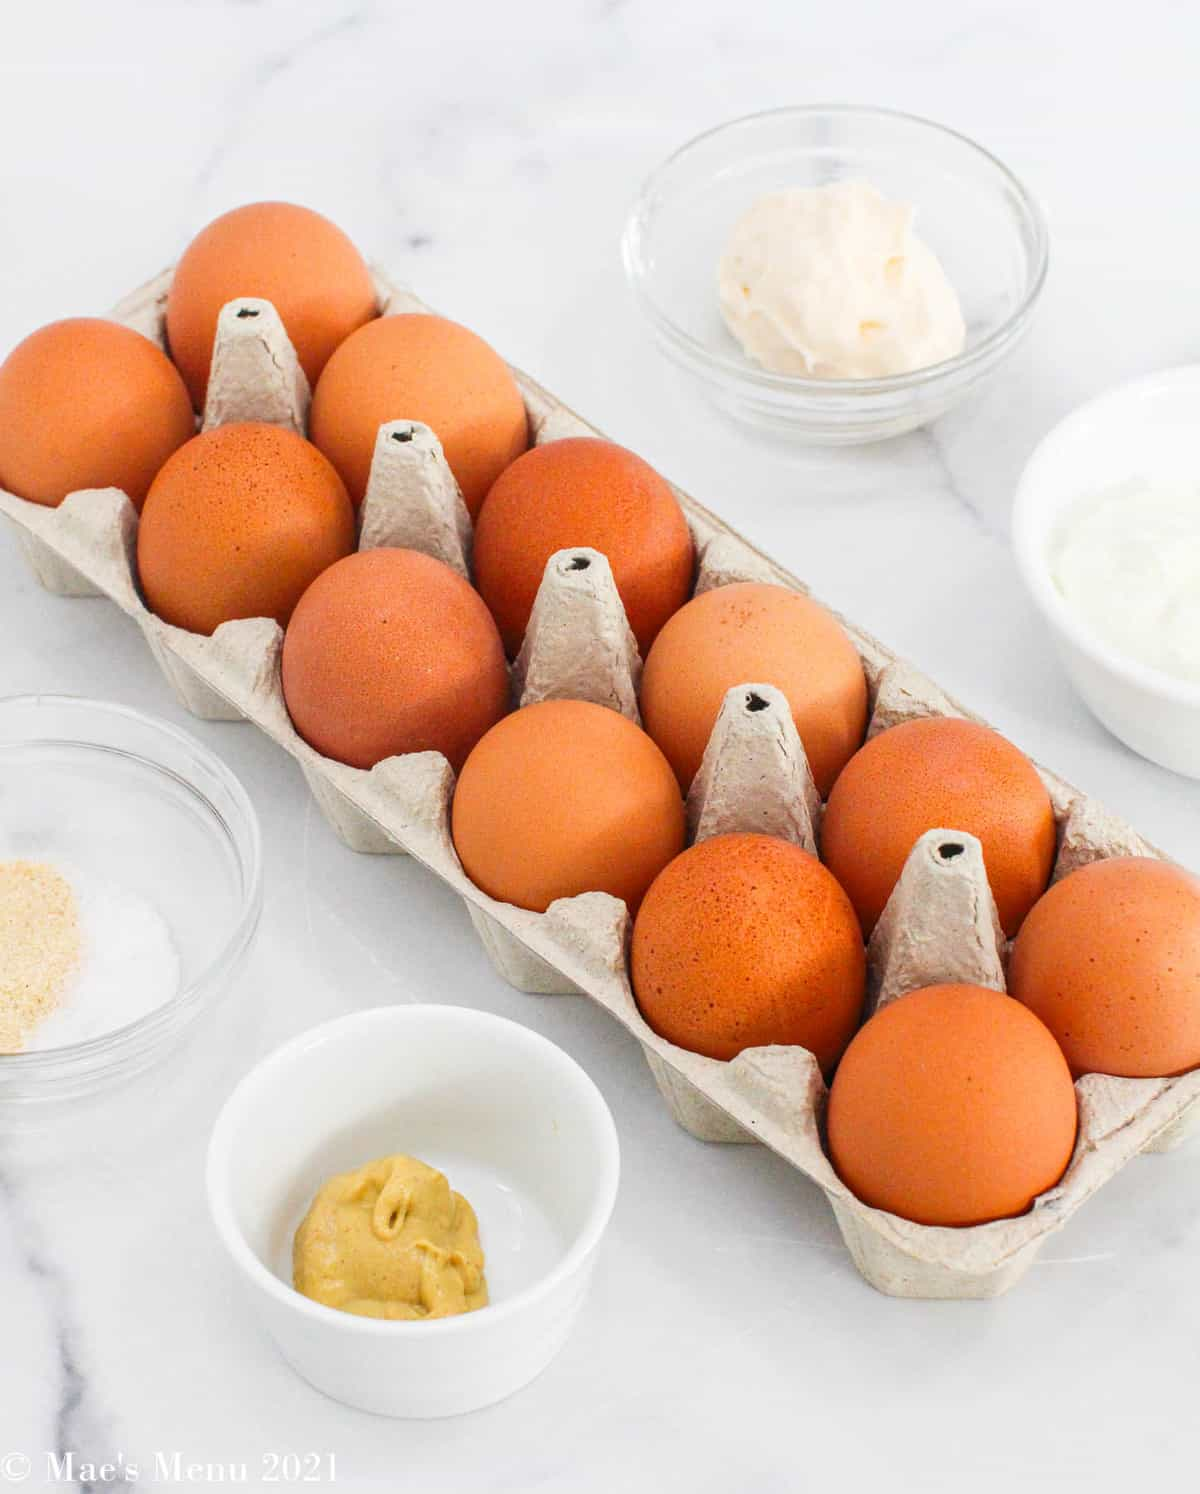 All the ingredients for healthy deviled eggs:  large eggs, mayonnaise, greek yogurt, dijon mustard, and onion powder and salt